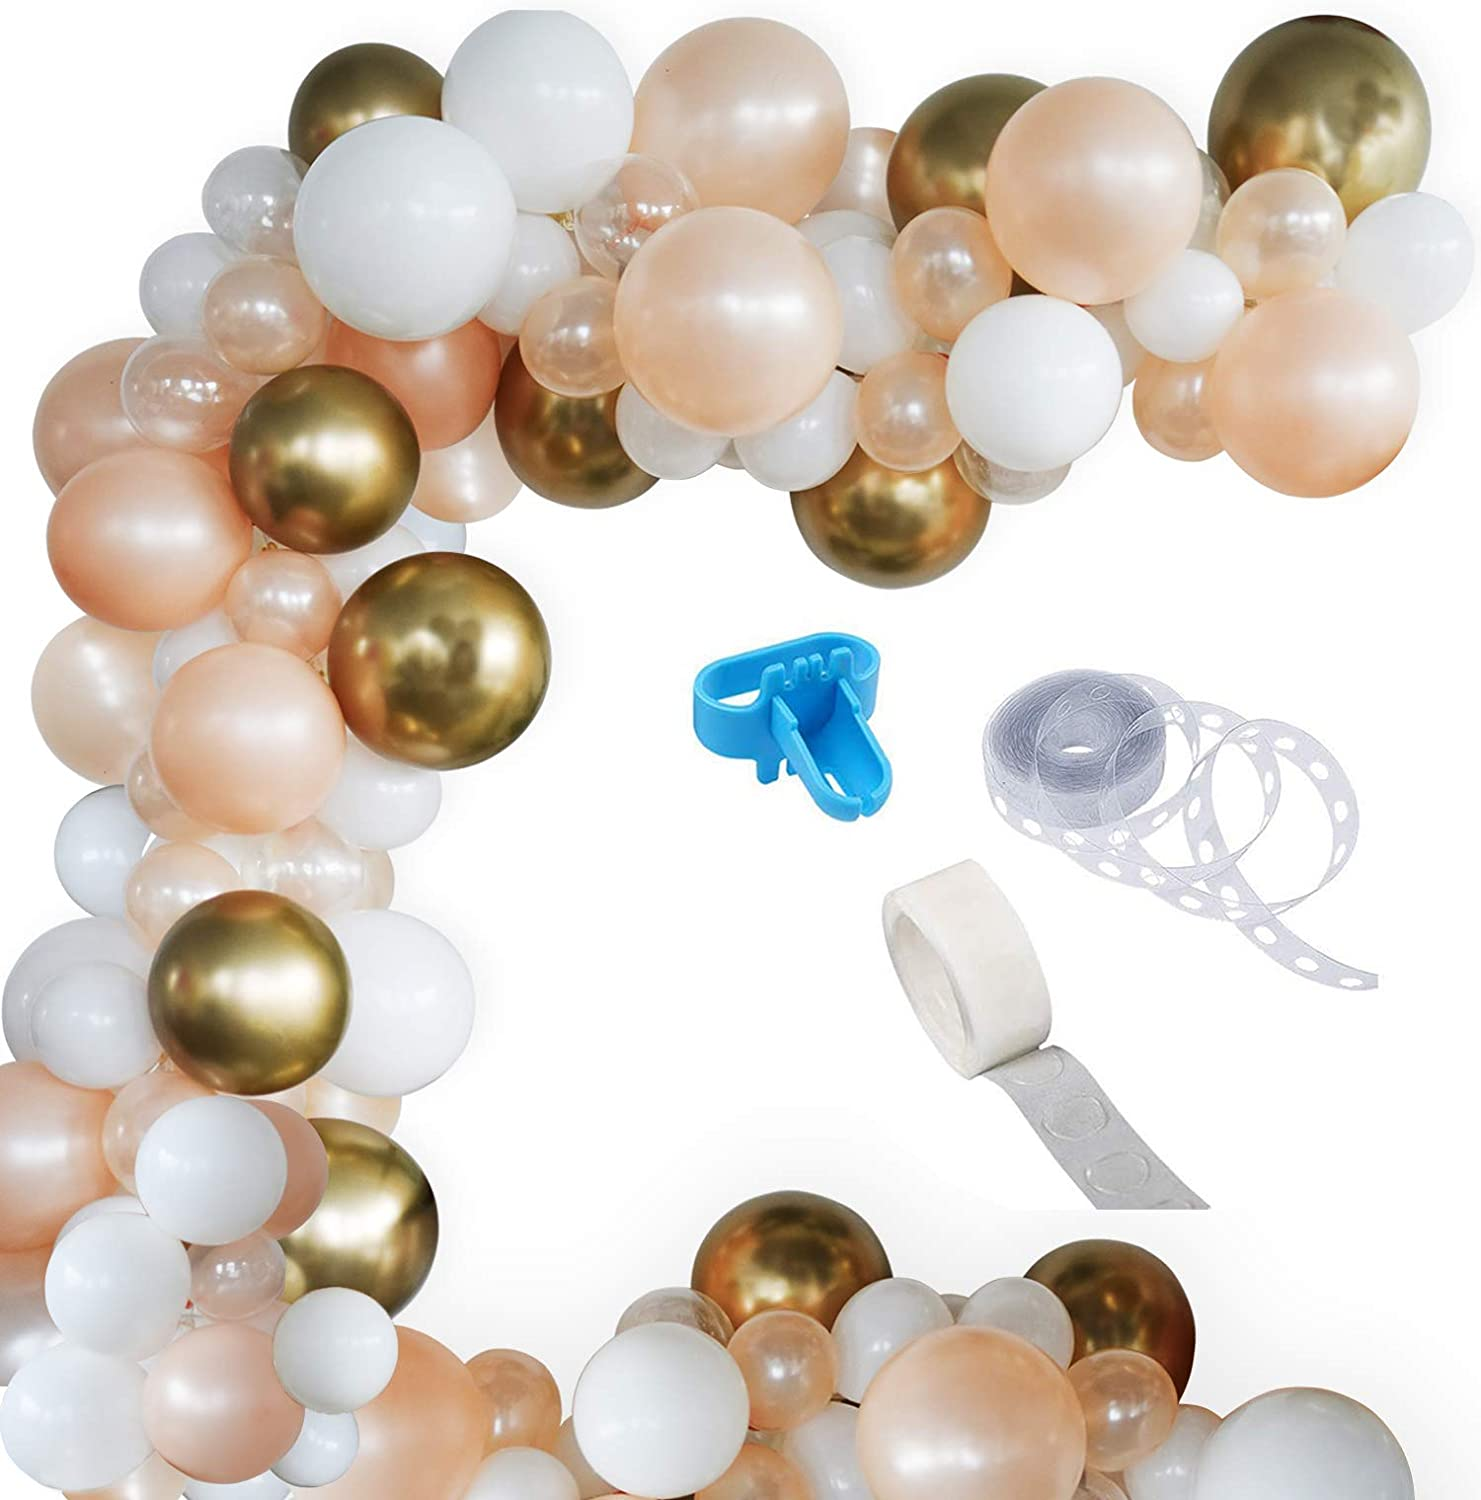 Blush Pearl Balloon Garland Kit, 100PCS Balloon Garland Including White,Clear,Chrome Gold & Blush Pearl Assorted Balloons Decorations Backdrop Ideal for Wedding Birthday Baby Shower Bridal Party Decorations